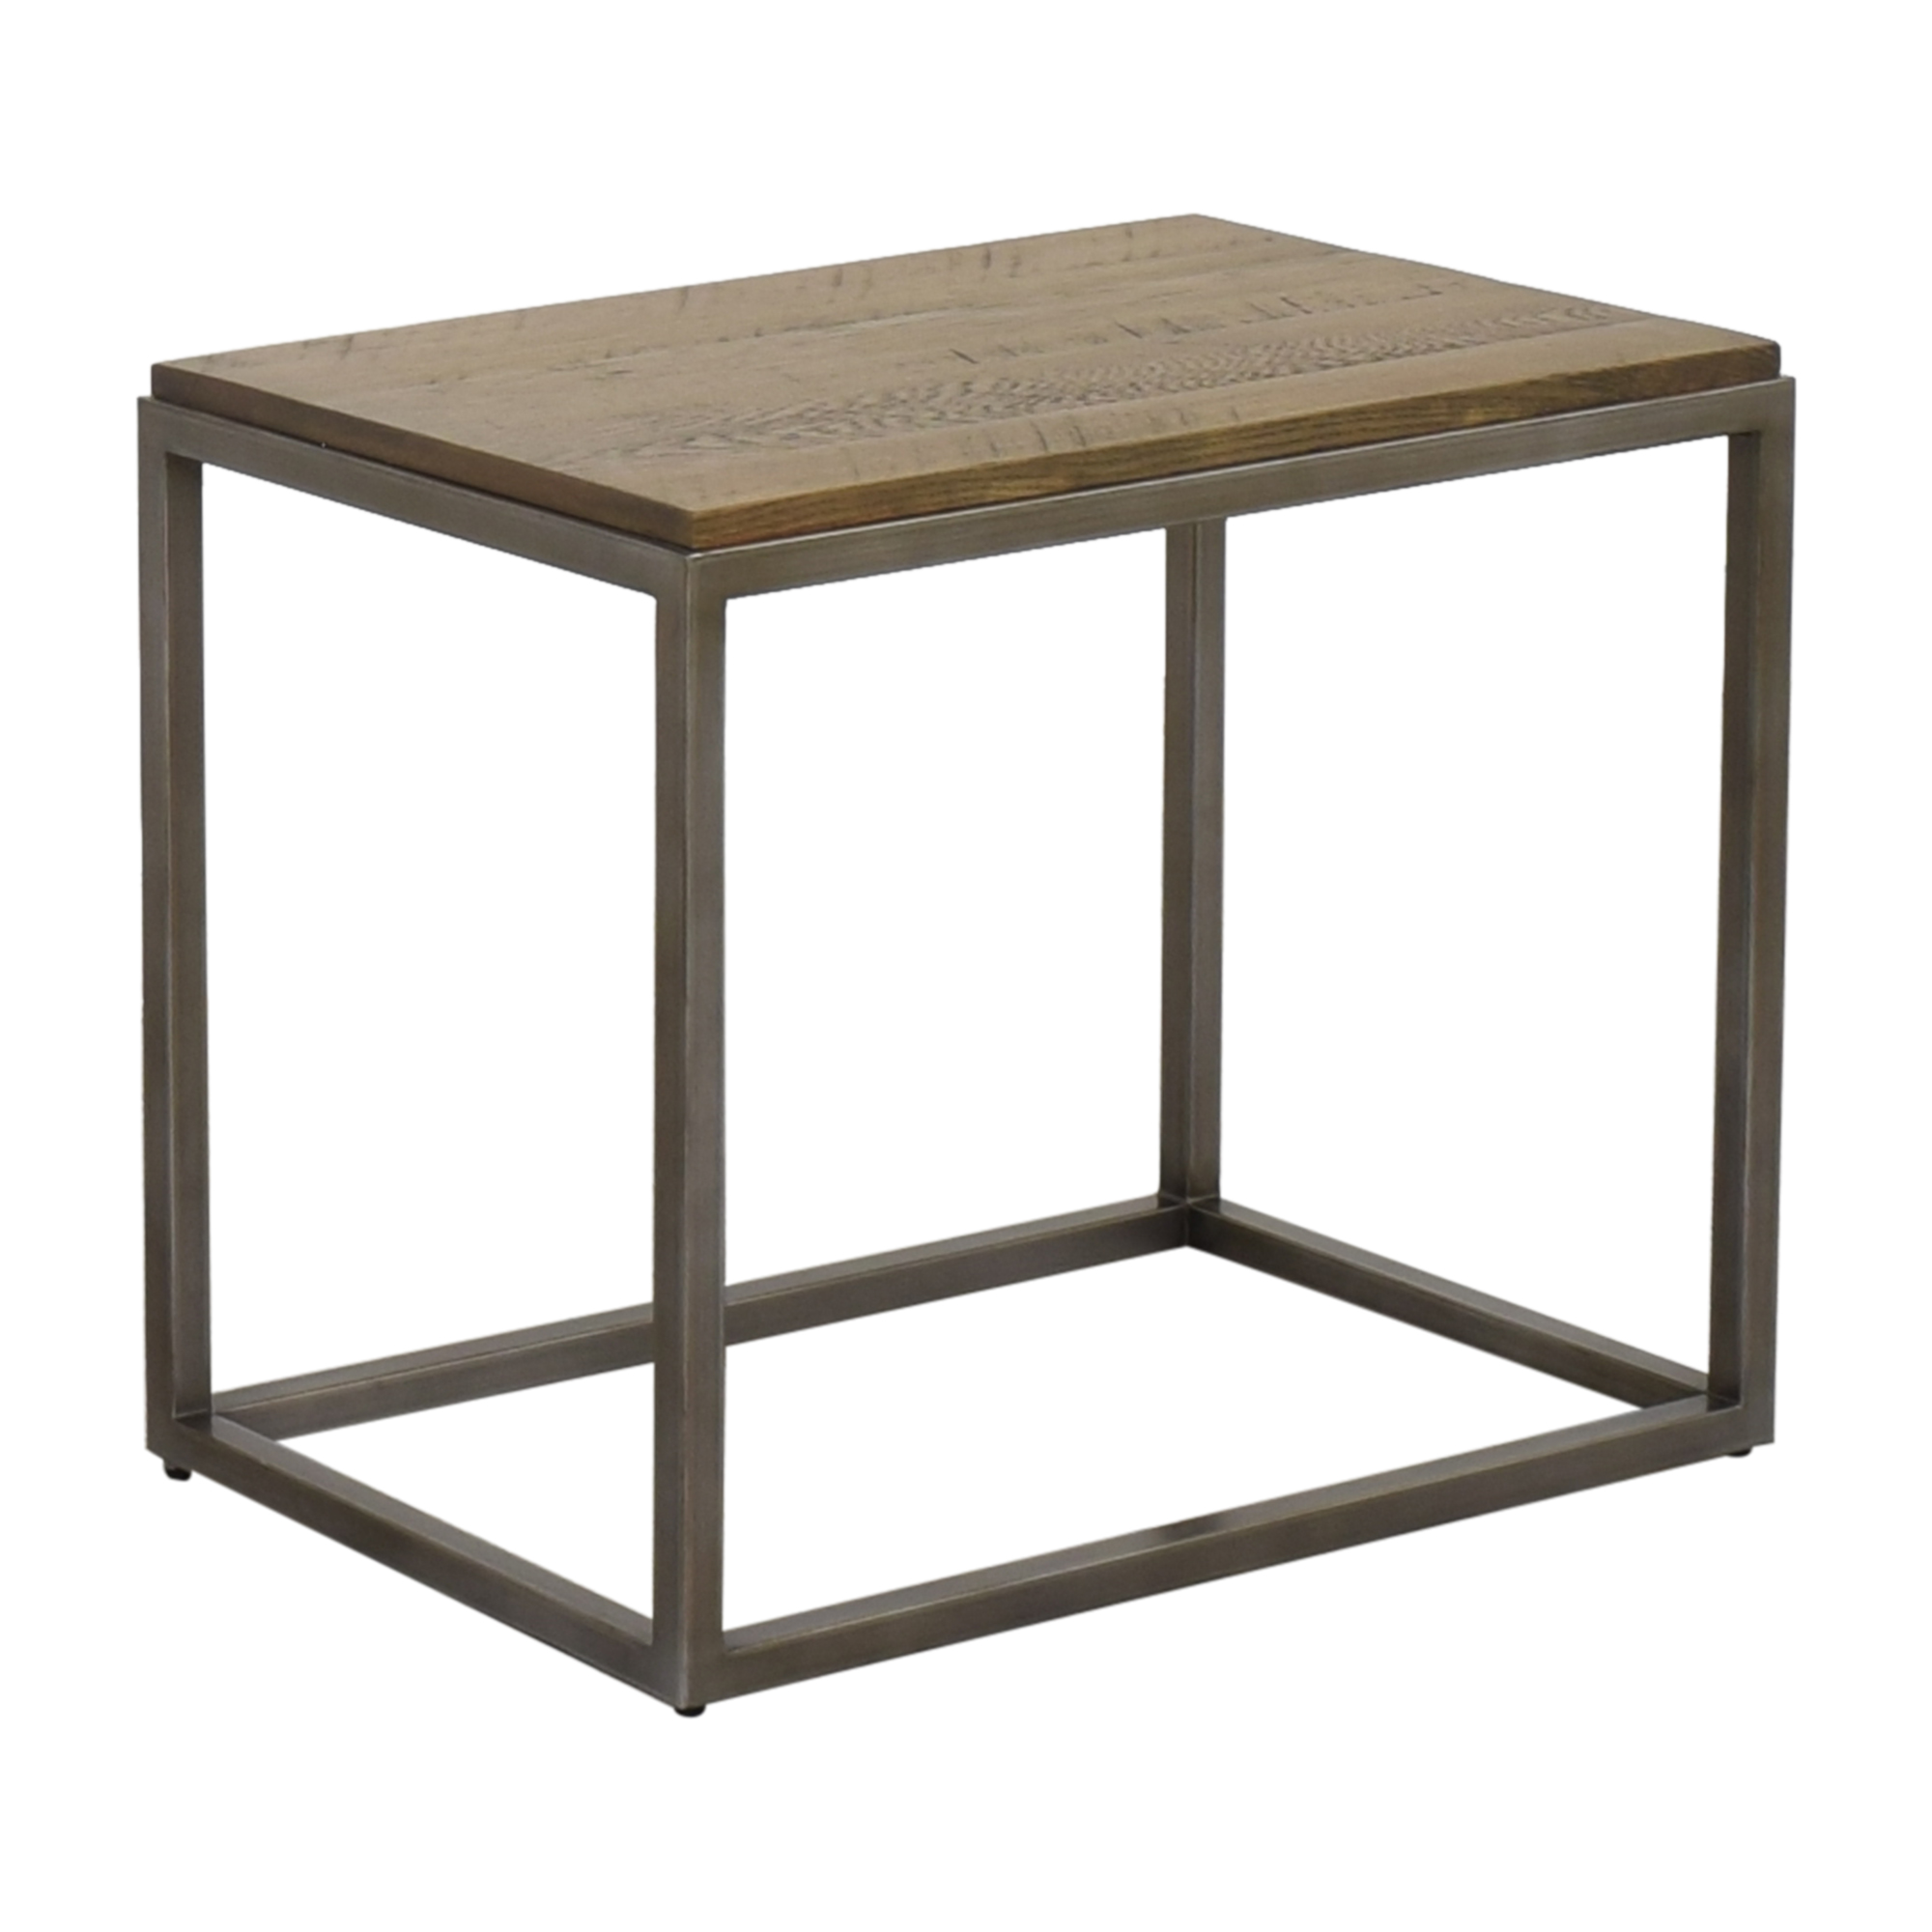 Ethan Allen Ethan Allen Borough End Table brown & grey